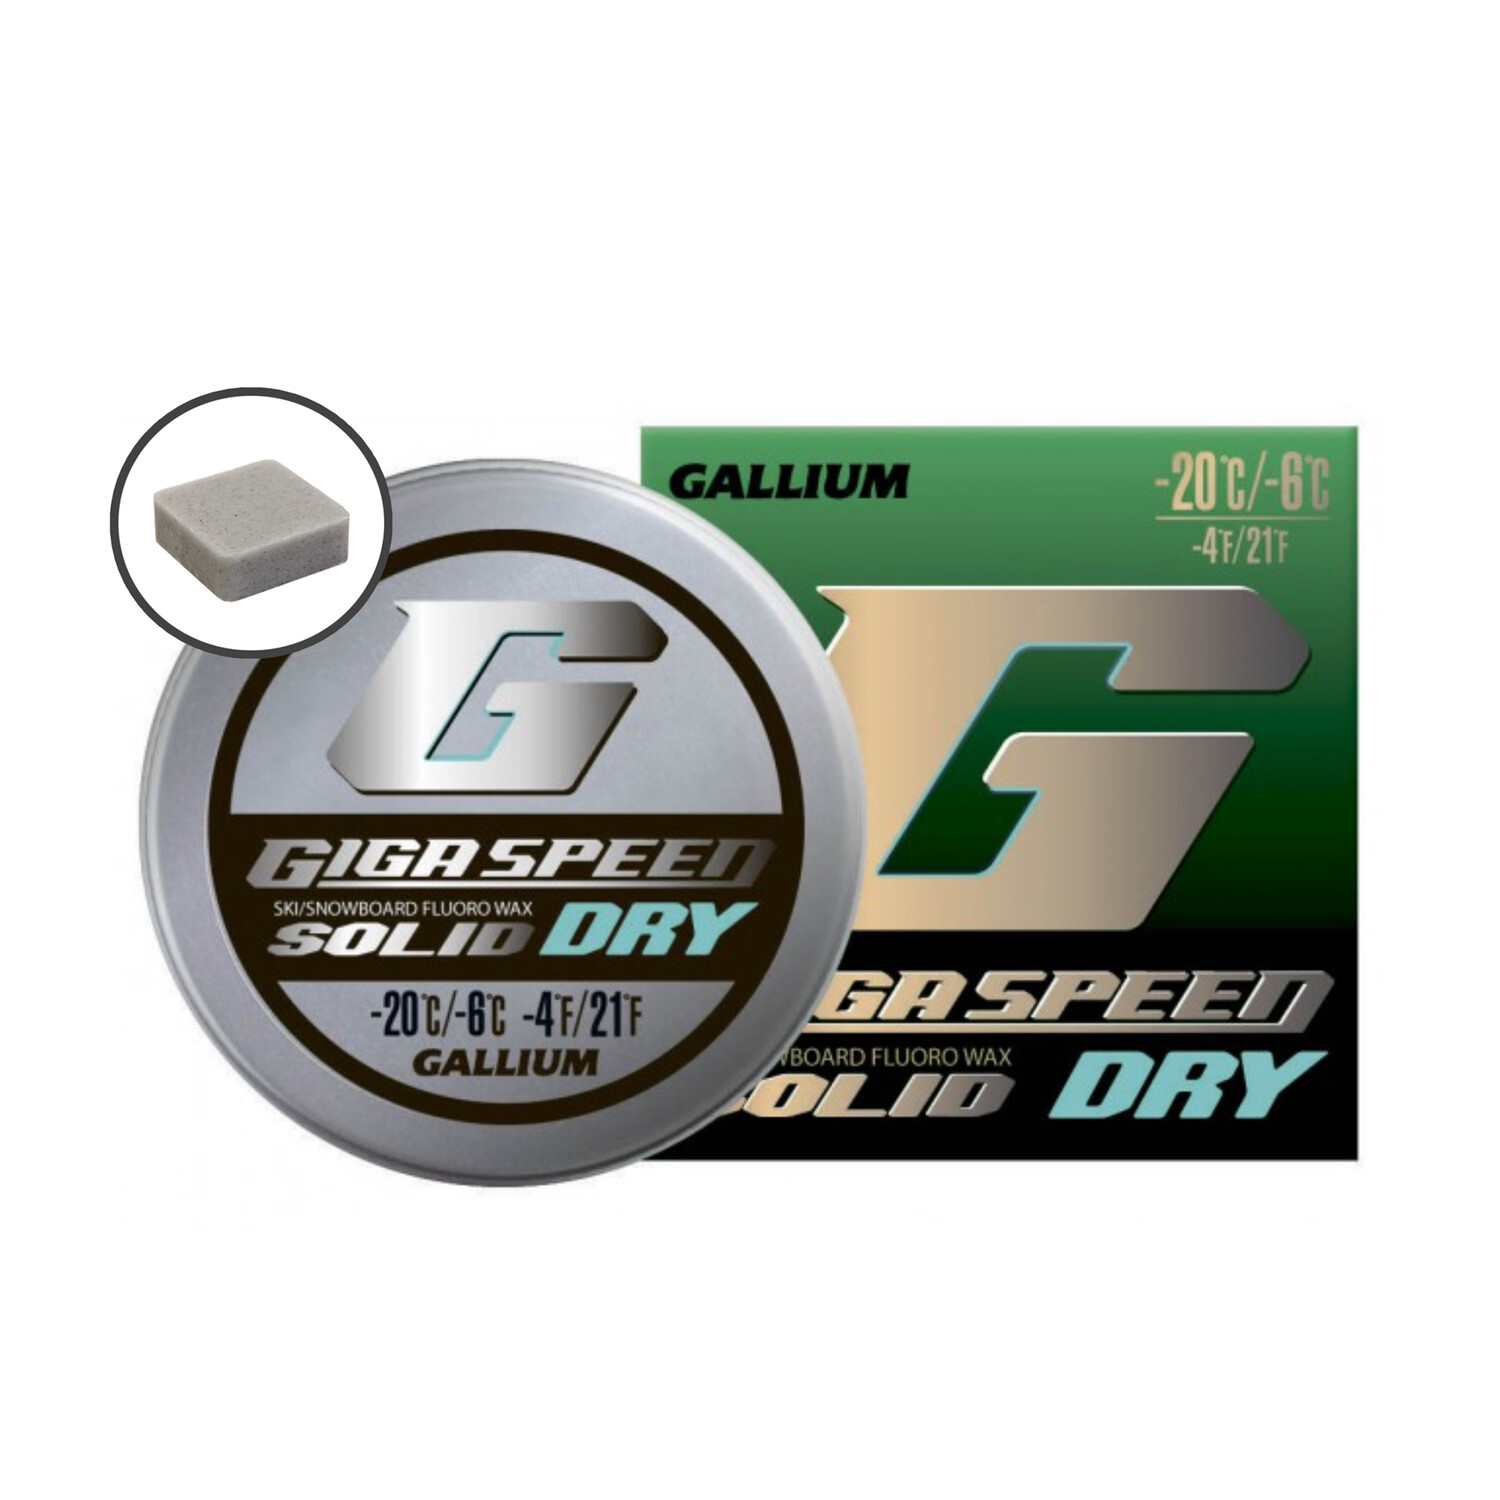 GIGA SPEED SOLID dry